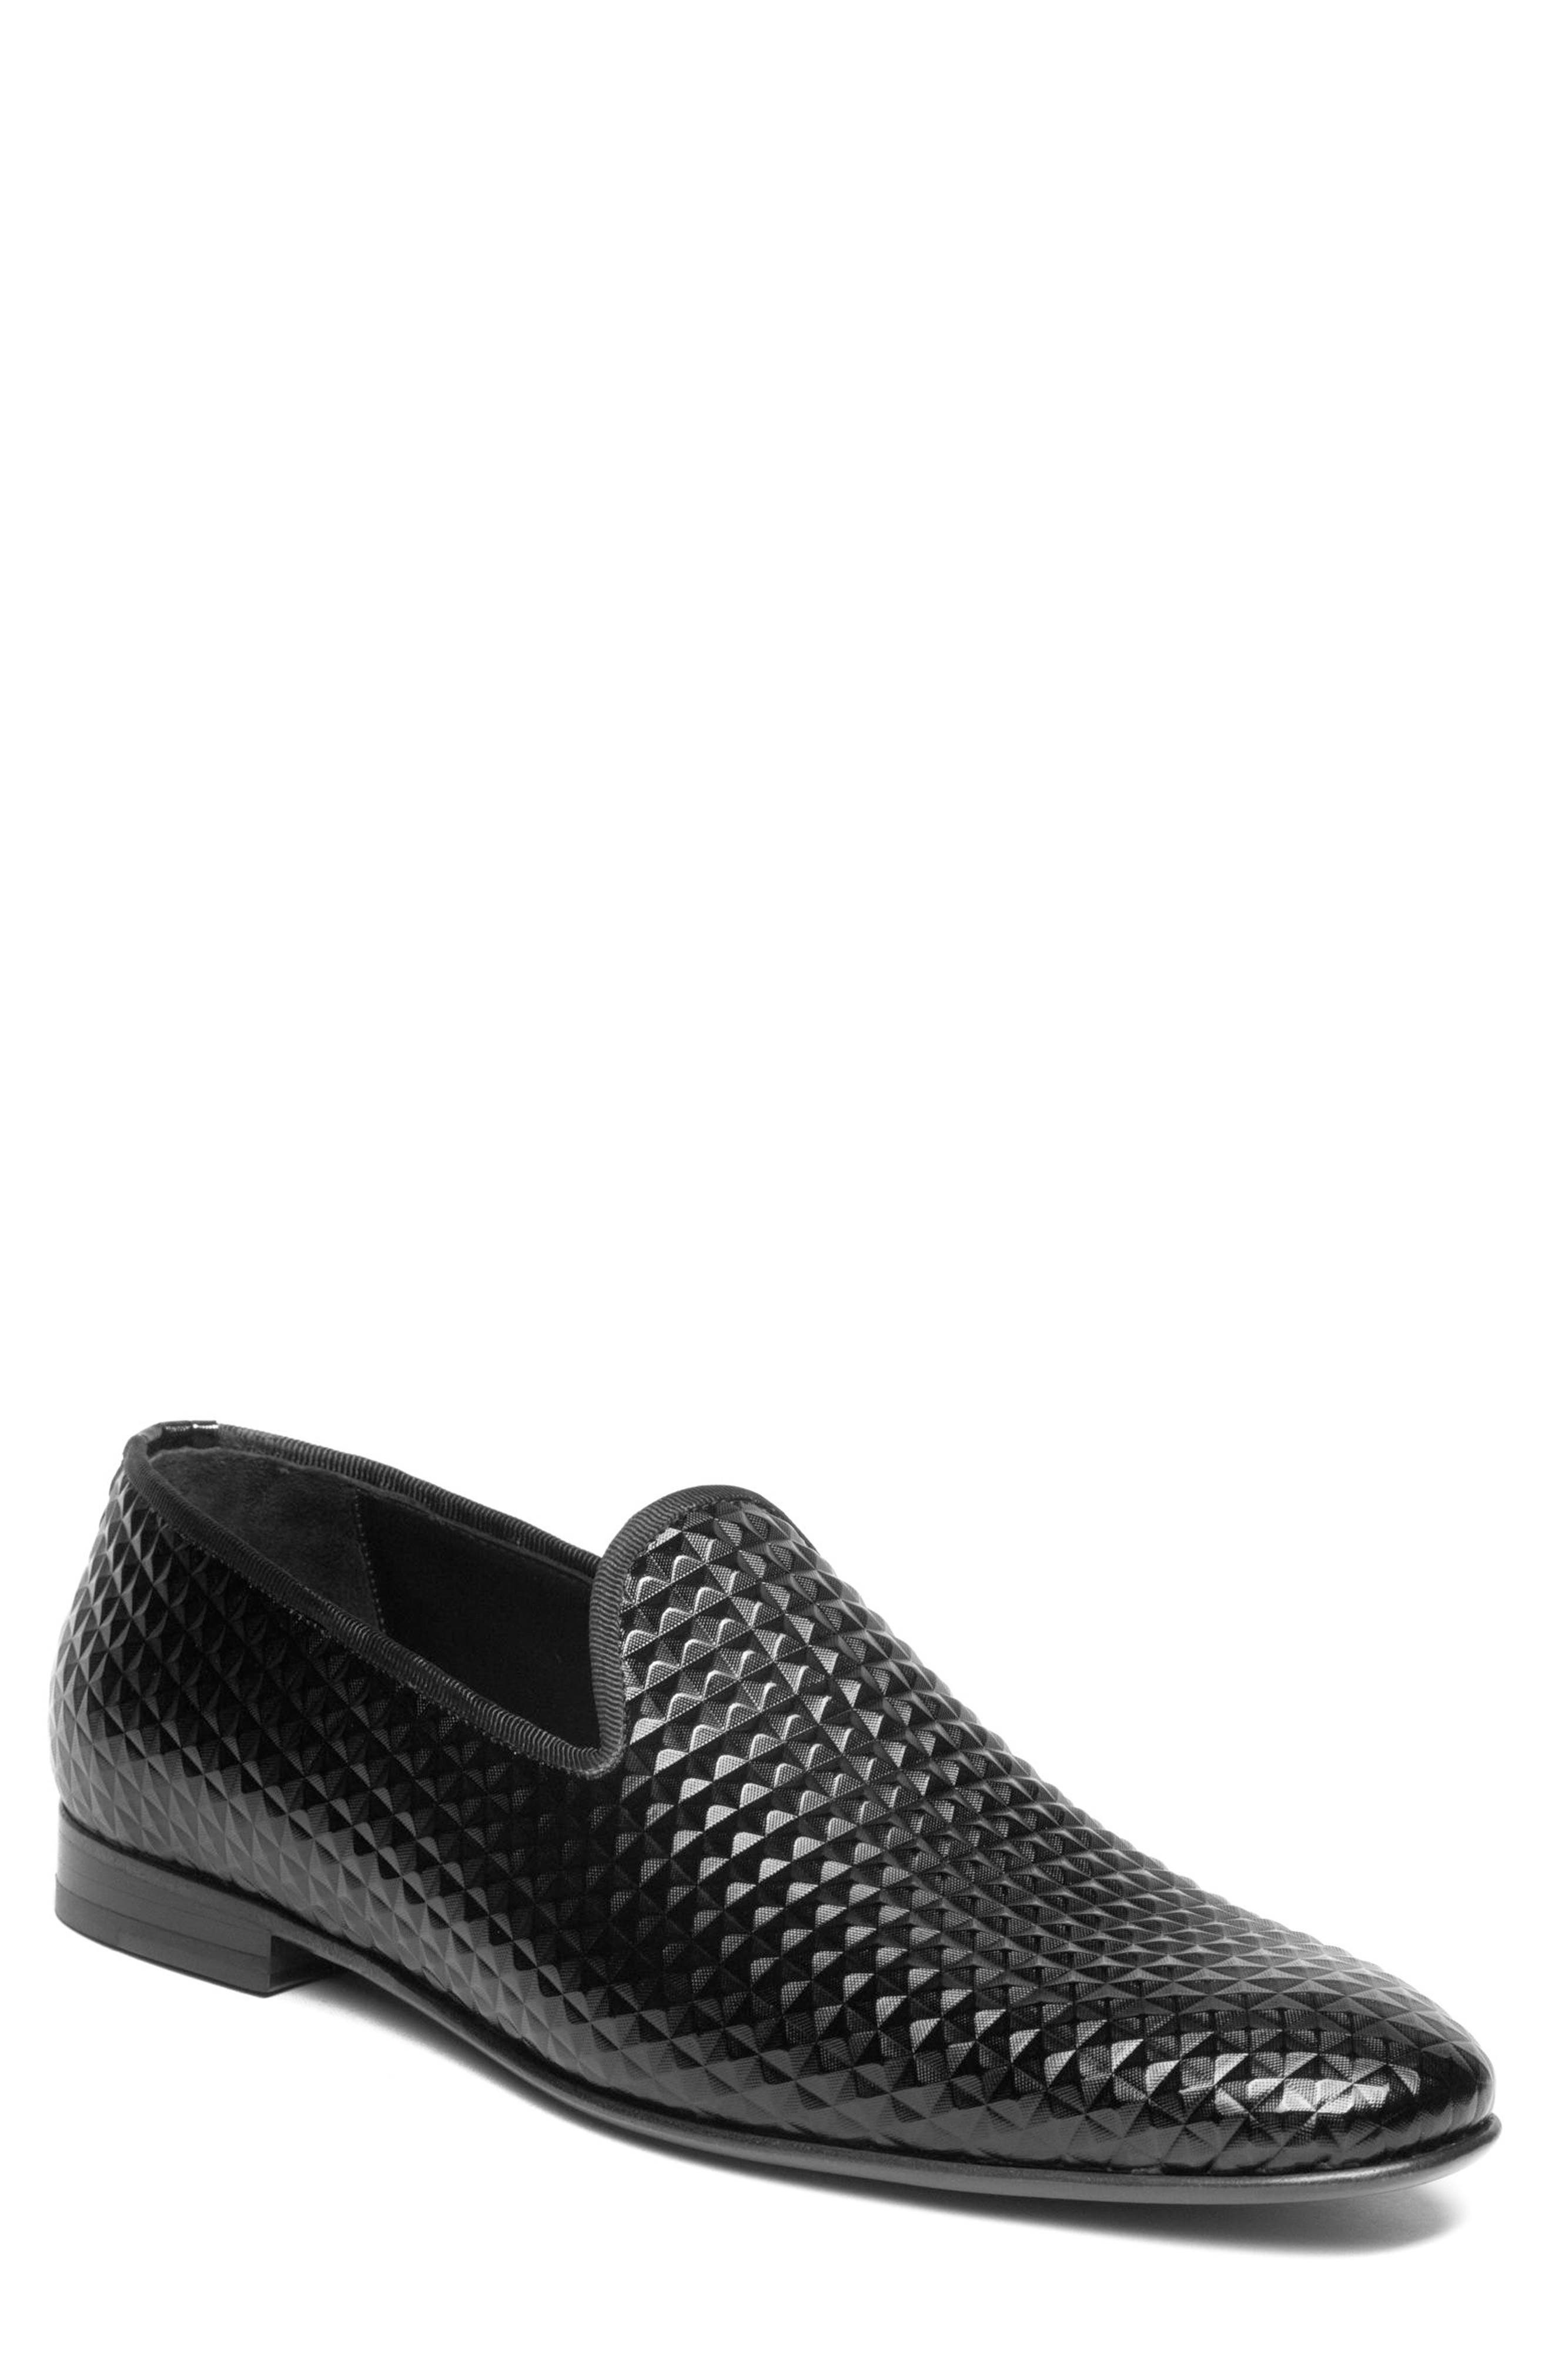 Hugh Pyramid Embossed Venetian Loafer,                         Main,                         color, 001